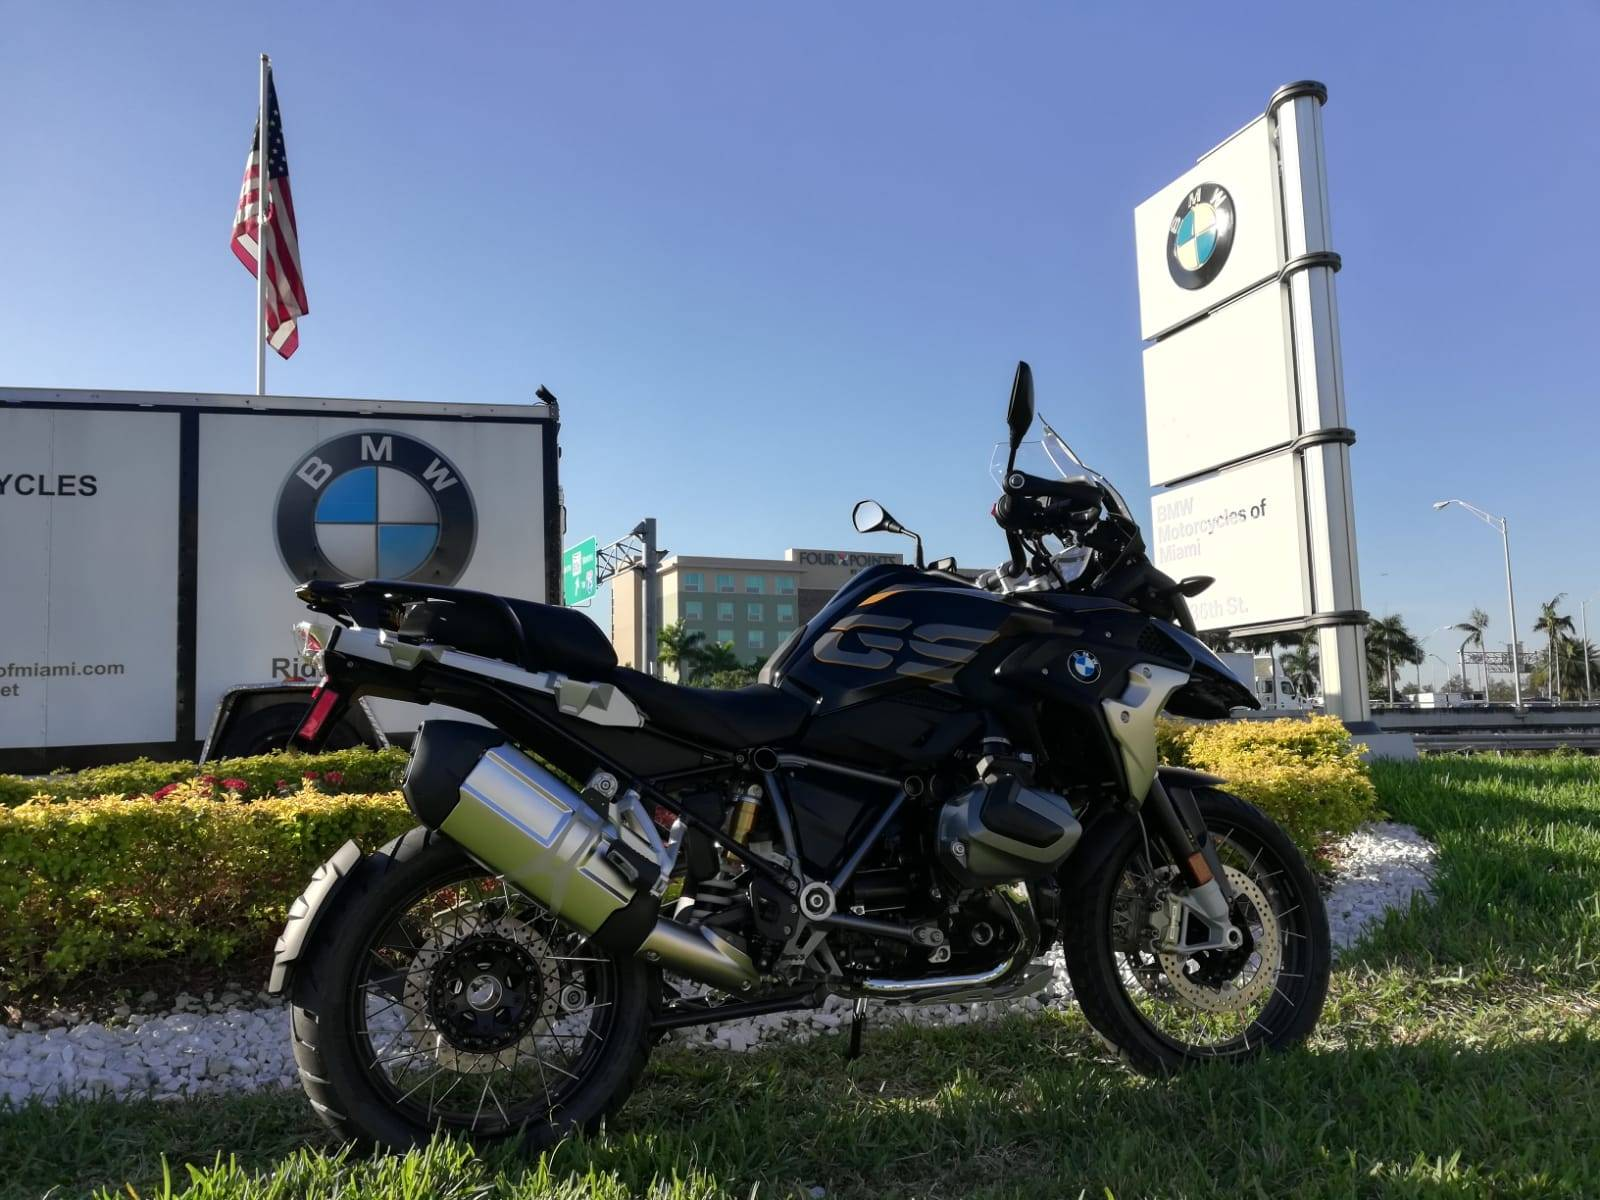 New 2019 BMW R 1250 GS for sale, BMW R 1250GS for sale, BMW Motorcycle GS, new BMW GS, Spirit of GS, BMW Motorcycles of Miami, Motorcycles of Miami, Motorcycles Miami, New Motorcycles, Used Motorcycles, pre-owned. #BMWMotorcyclesOfMiami #MotorcyclesOfMiami. - Photo 12